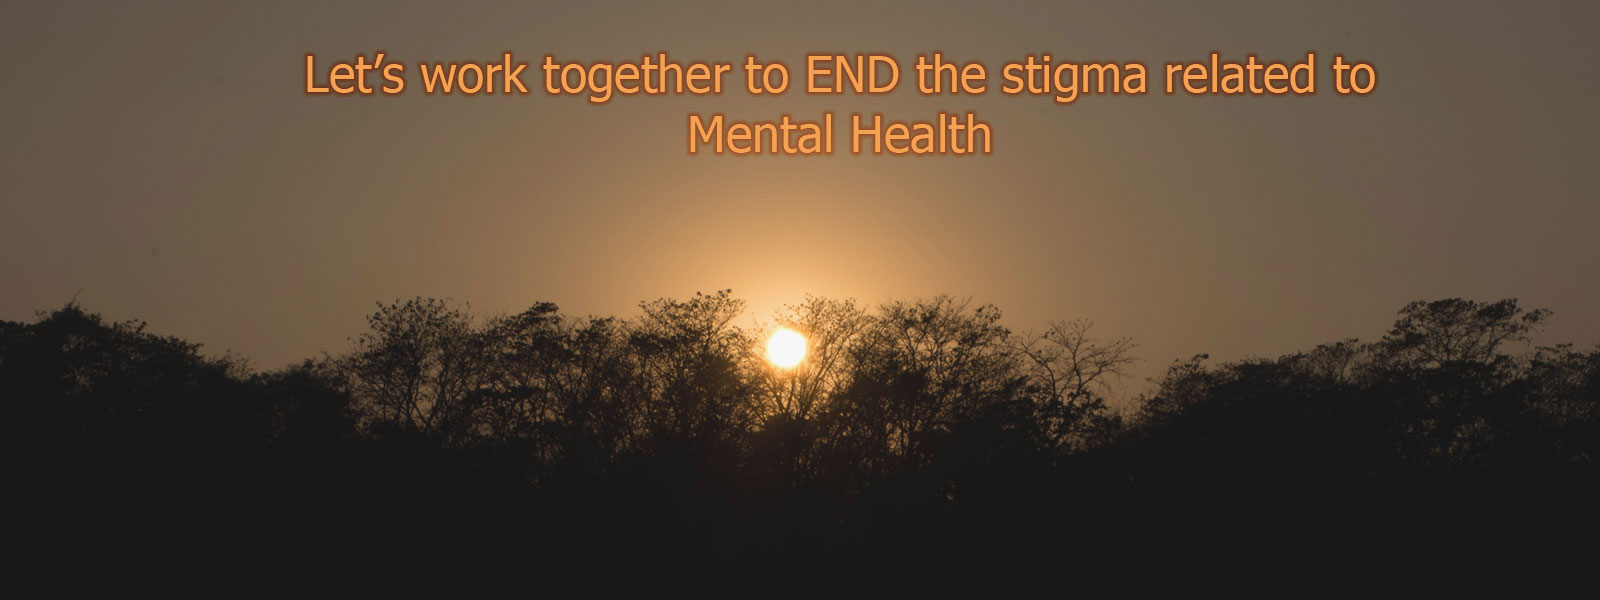 Let's work together to END the stigma related to Mental Health